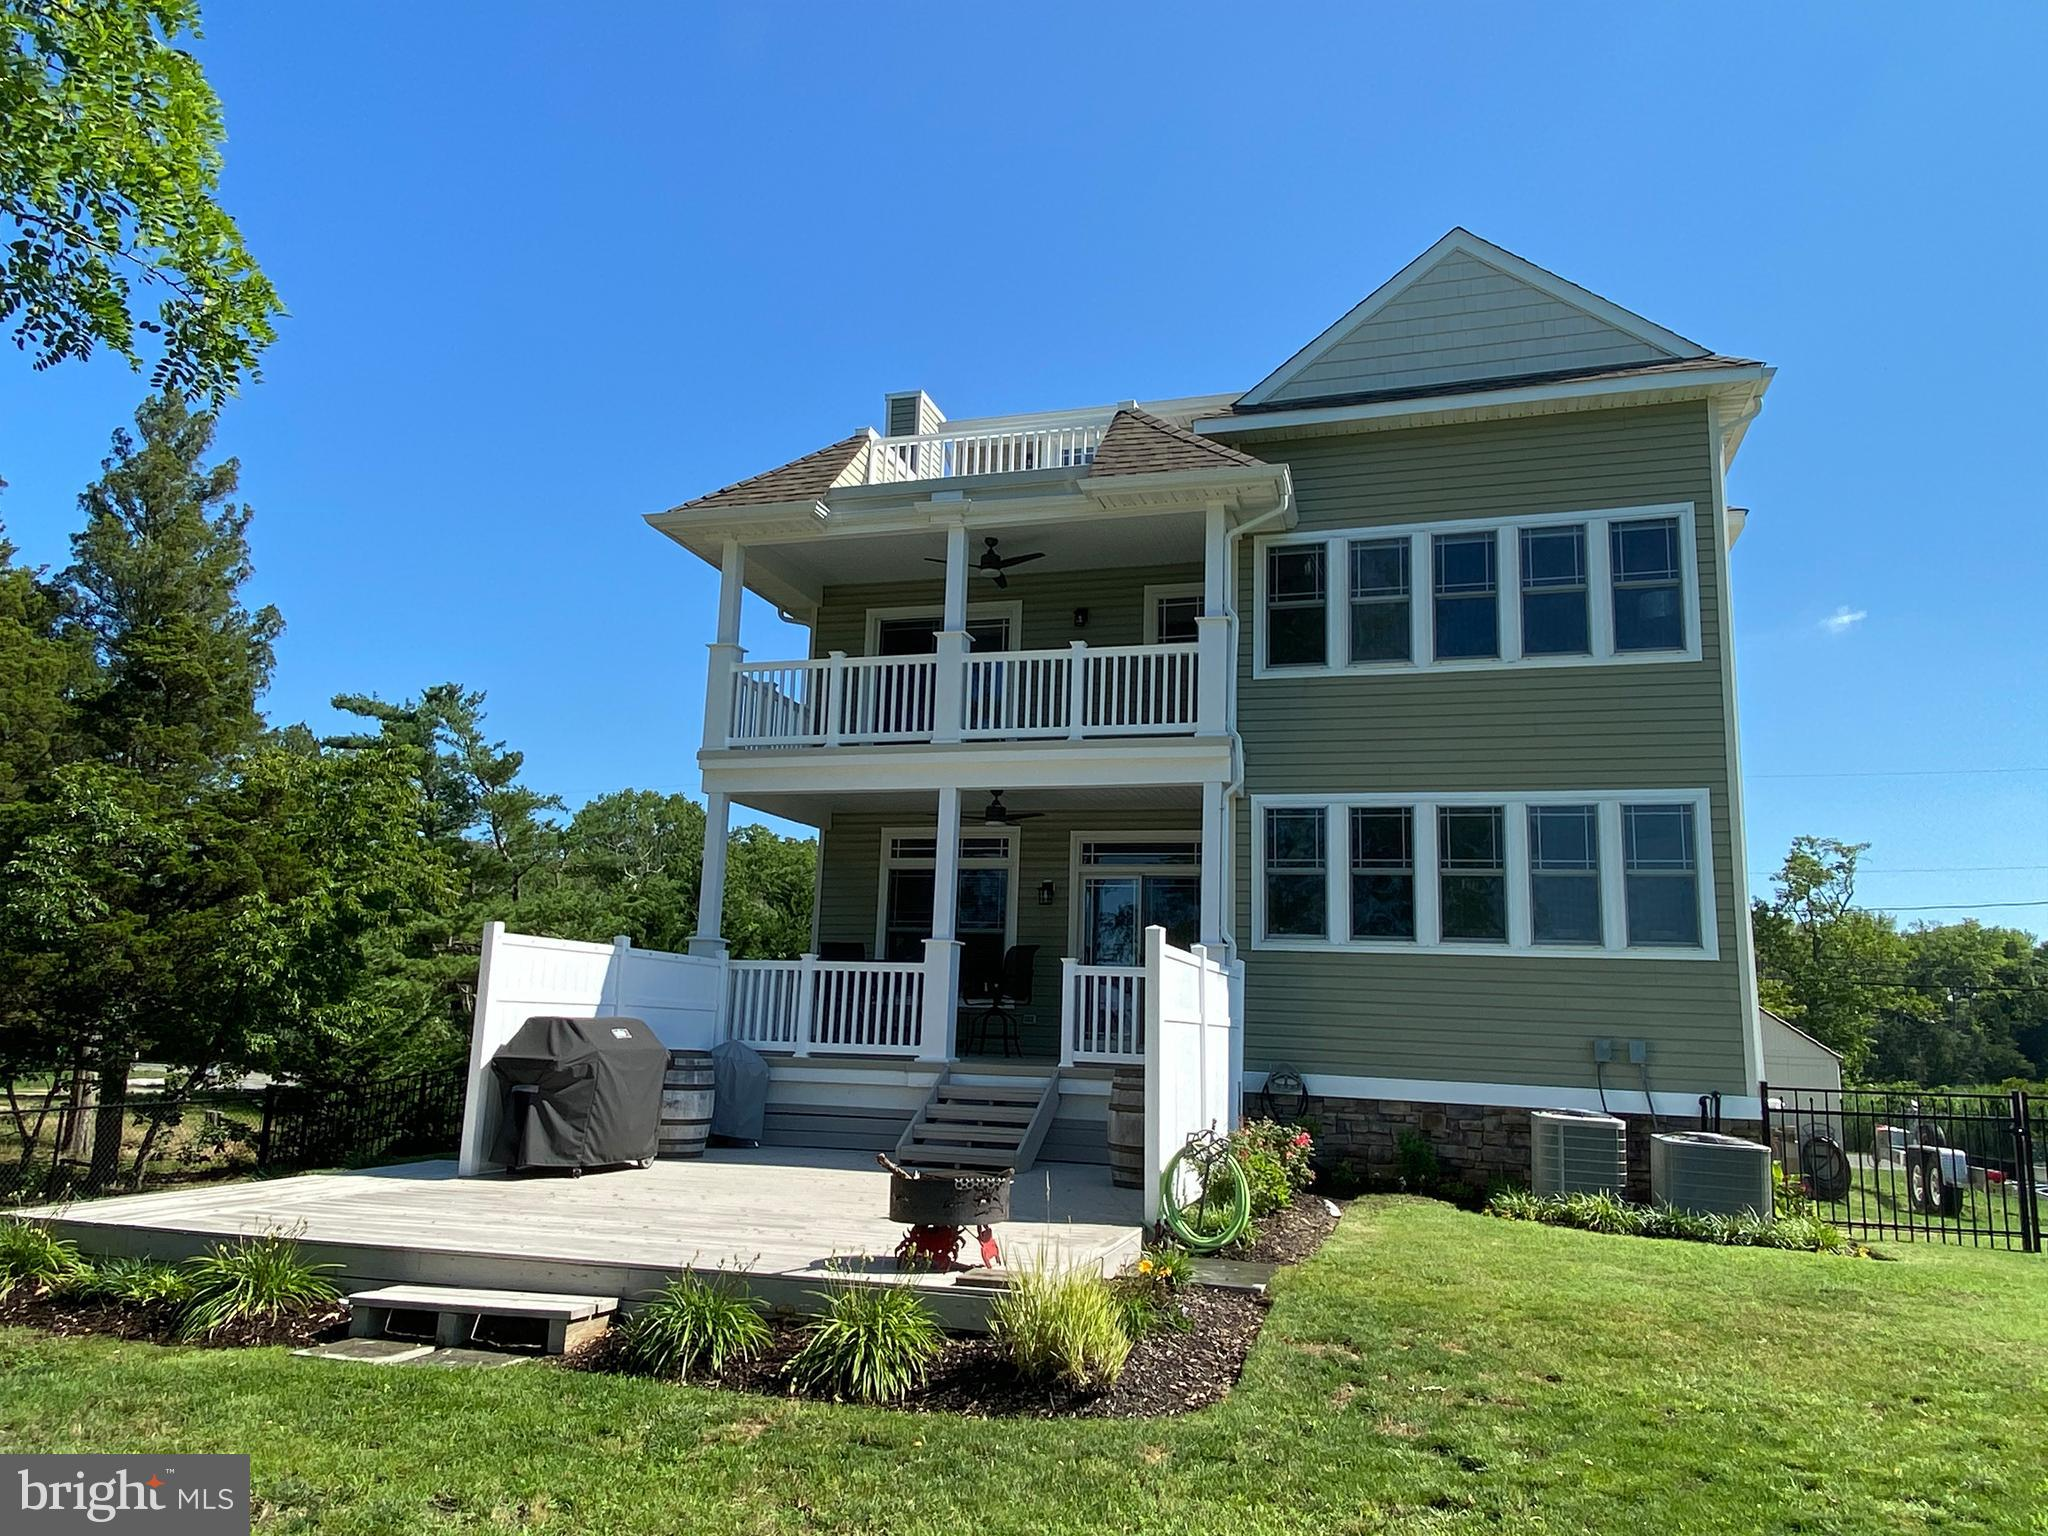 65 Reeds Beach Rd, Cape May Court House, NJ, 08210